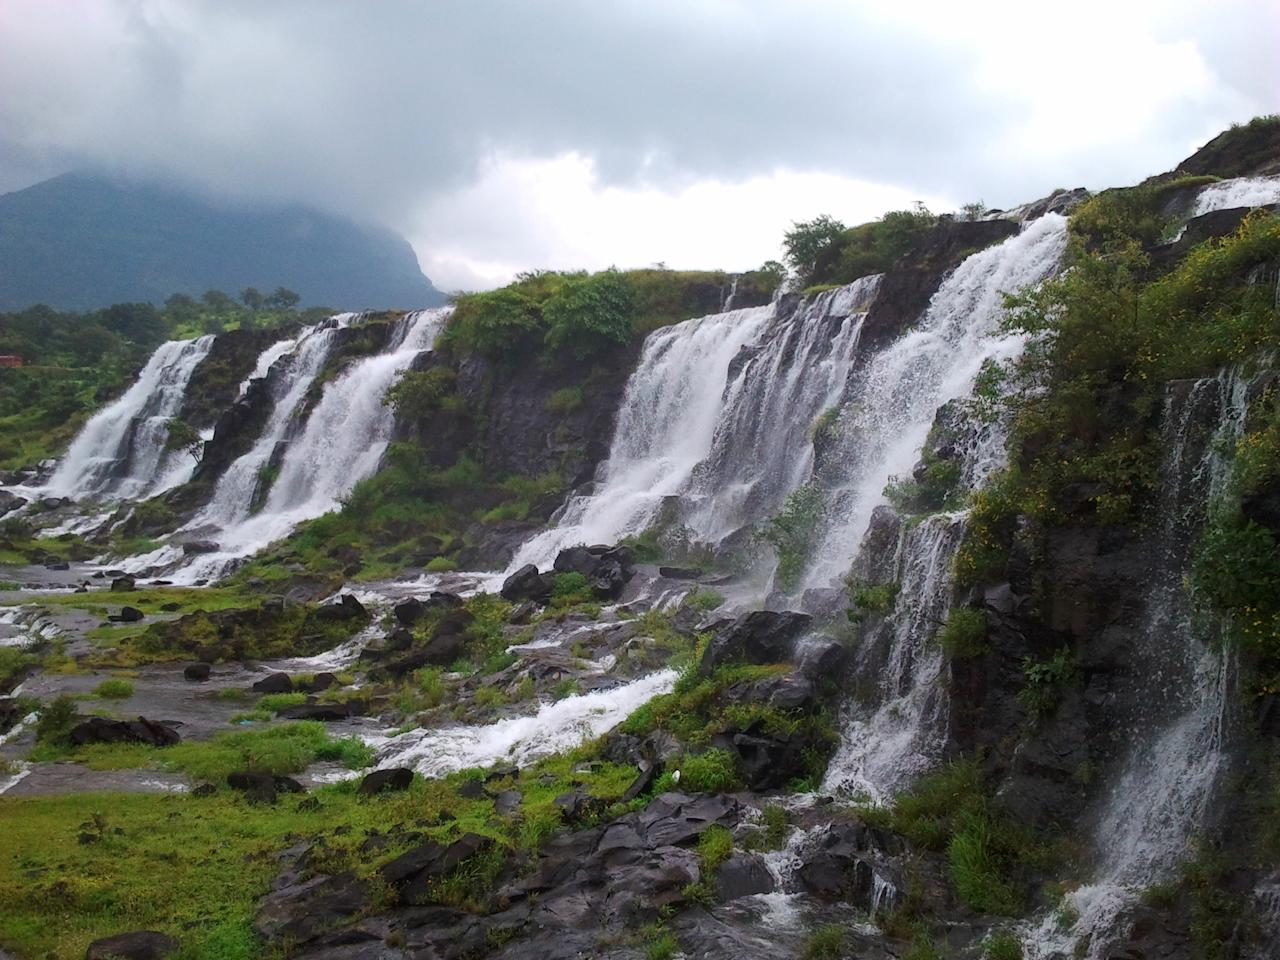 Another ideal location to relax and enjoy the richness of Nature, Bhandardara is known as a destination for Trekking, Star-Gazing, Sightseeing and cycling; needless to say that is apart from the majesty of its waterfalls and landscapes! Places to visit include Mount Kalsubai, the Wilson Dam, Bhandardara Lake, Randha Falls, Arthur Lake, Agasti Rishi Ashram, Amriteshwar Temple and Sandhan Valley.